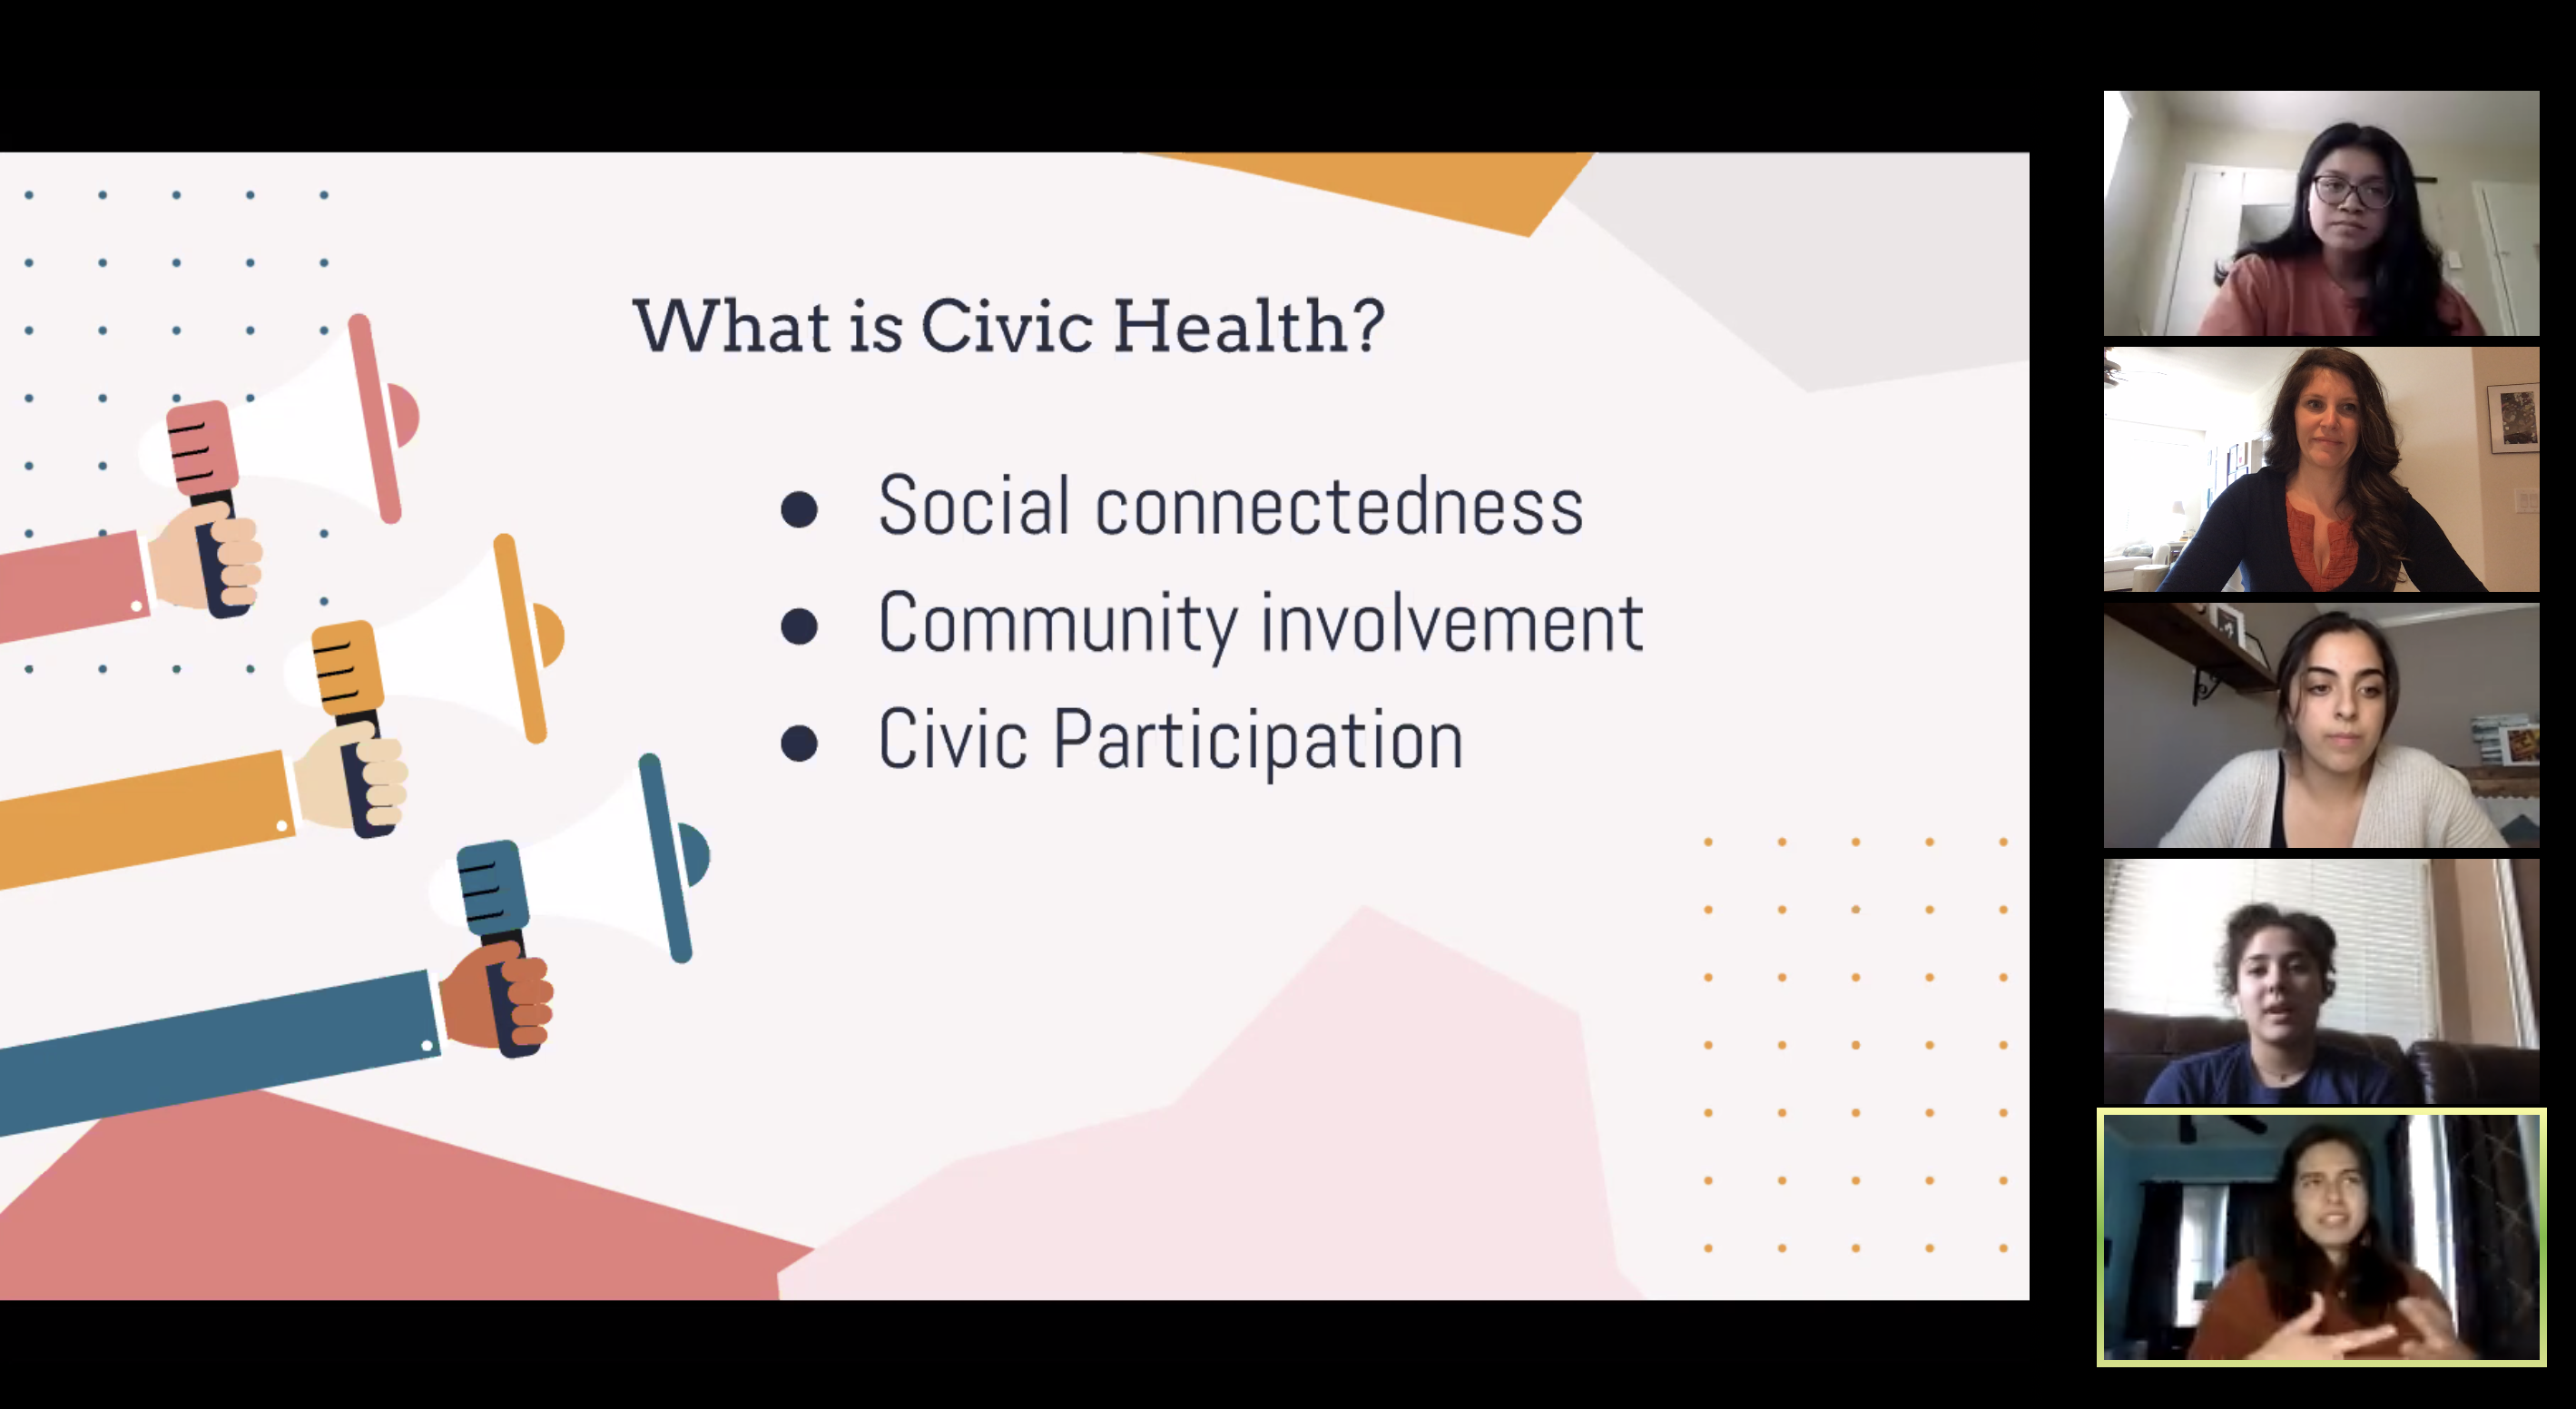 Students reviewing Civic Health